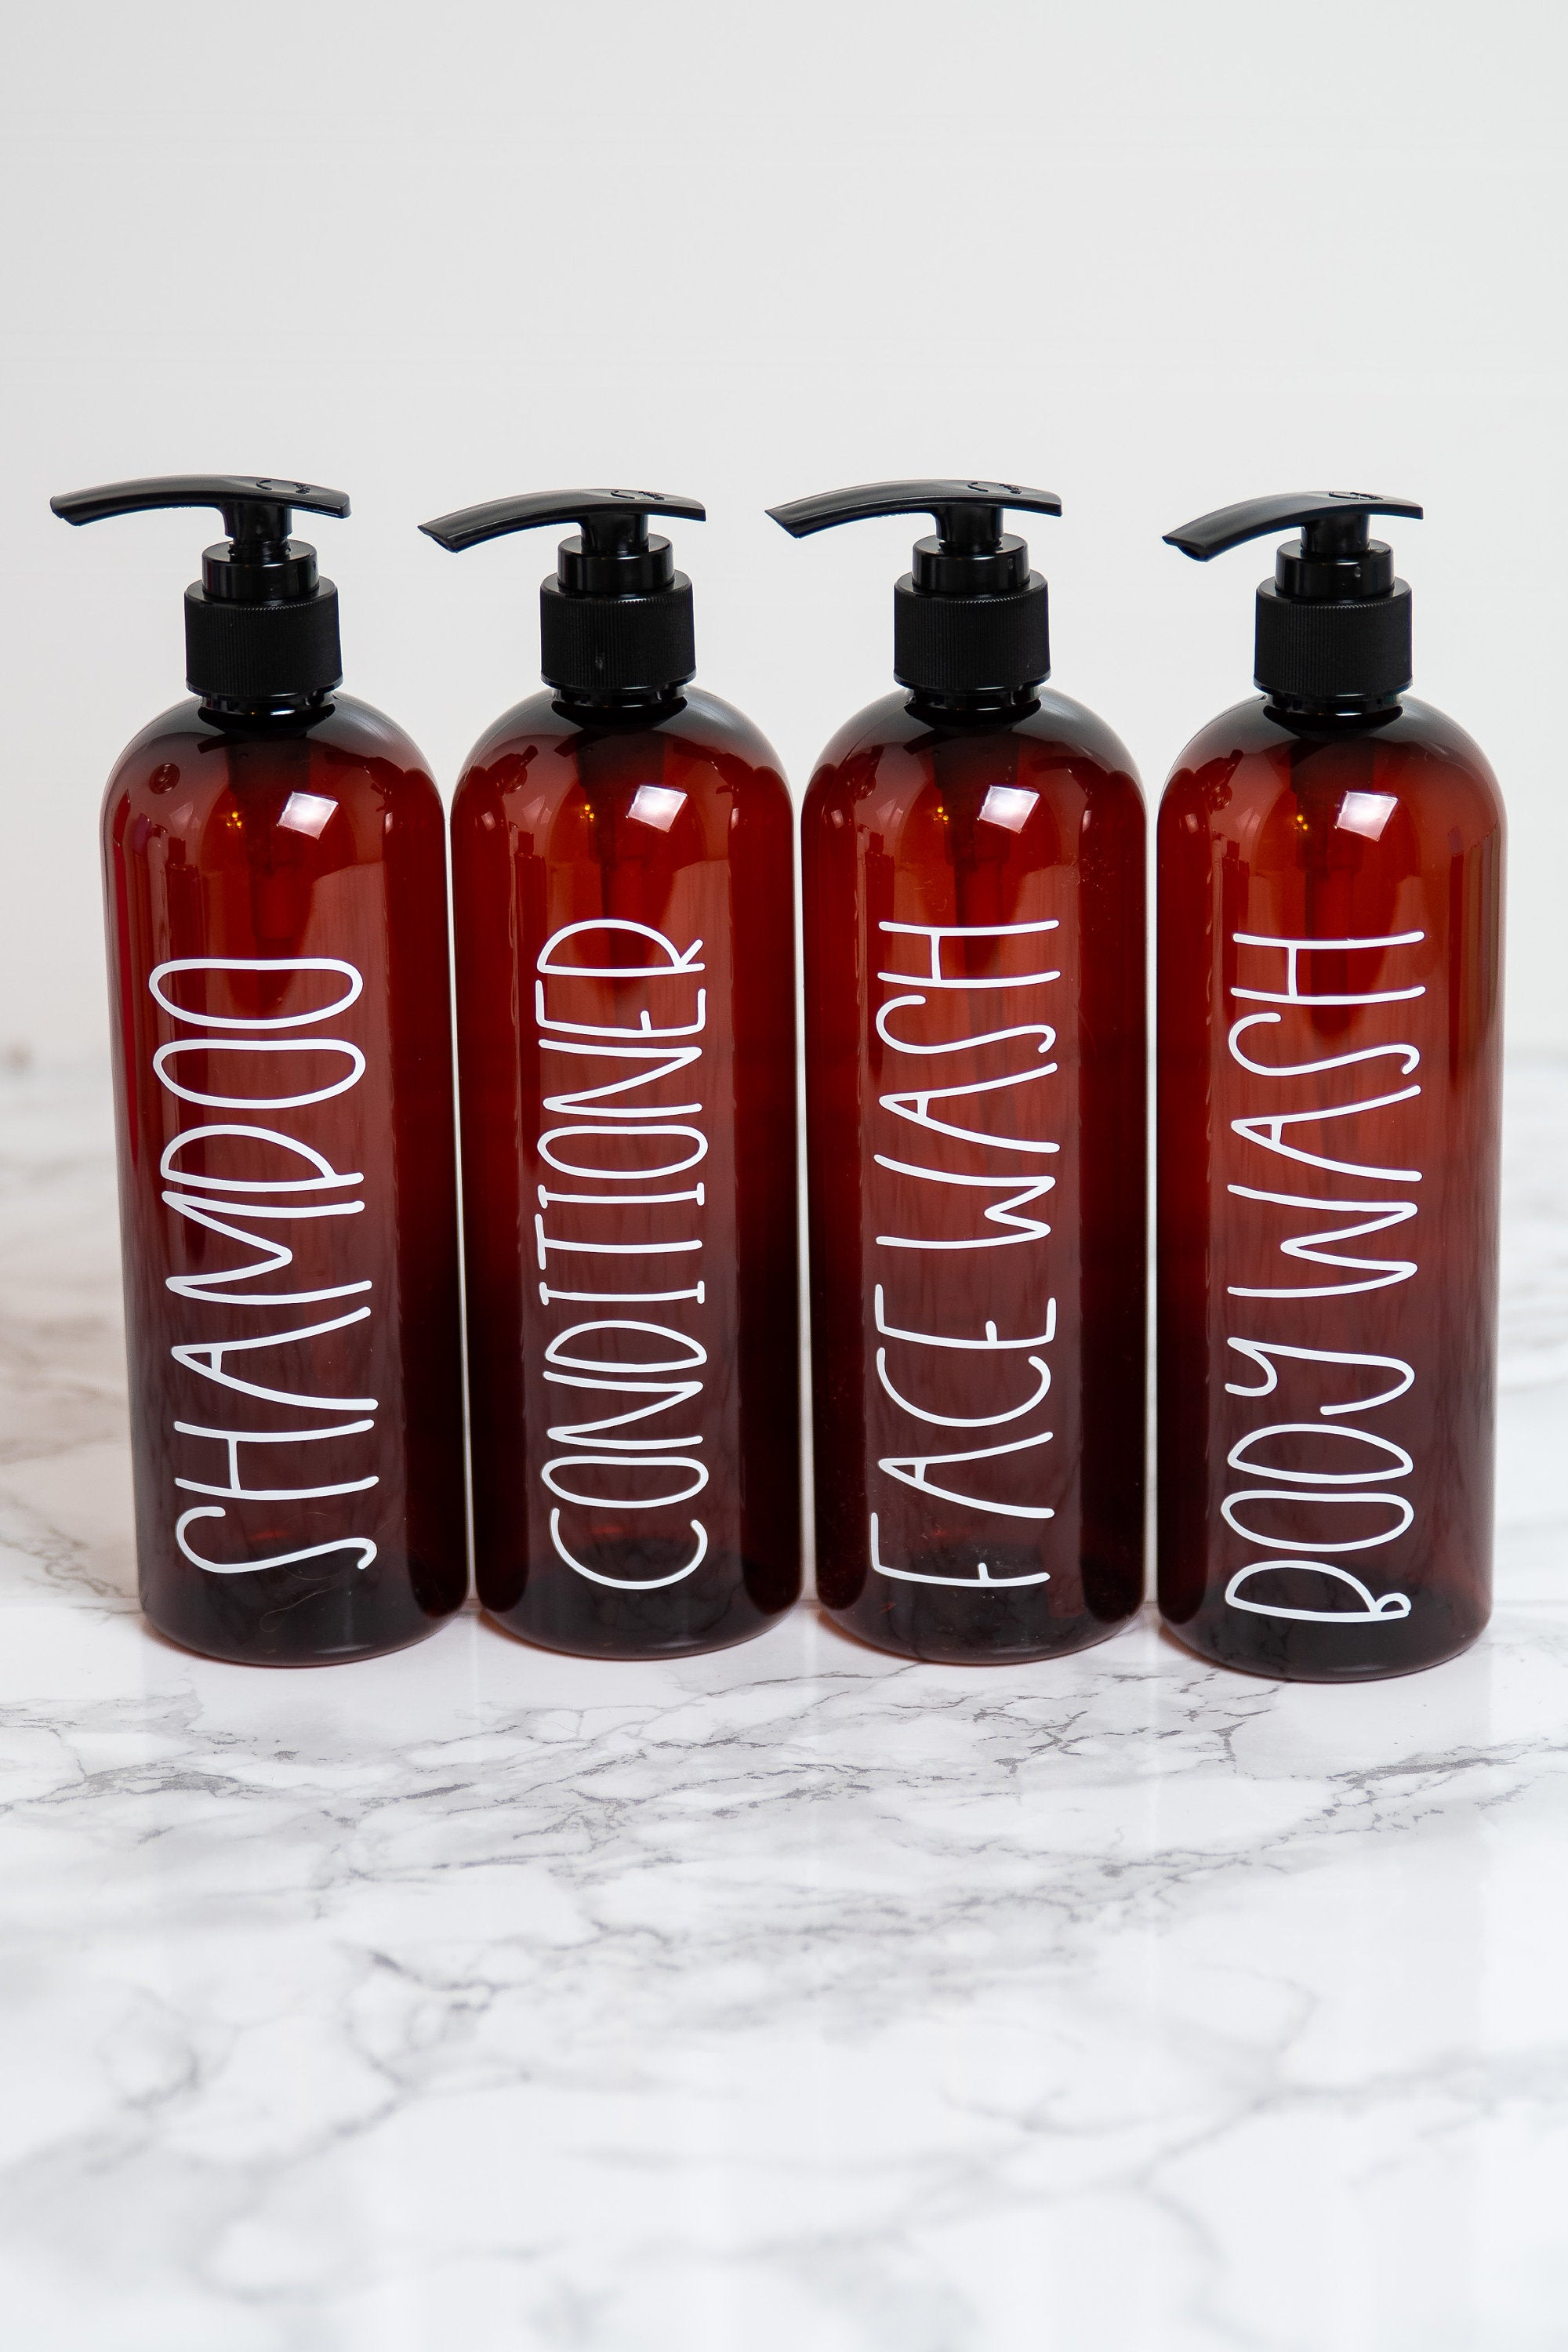 16 oz Shampoo Bottles, Refillable Dispenser Bottle with Pump, Labeled Shampoo Bottle Plastic, Guest Bathroom Decor Farmhouse